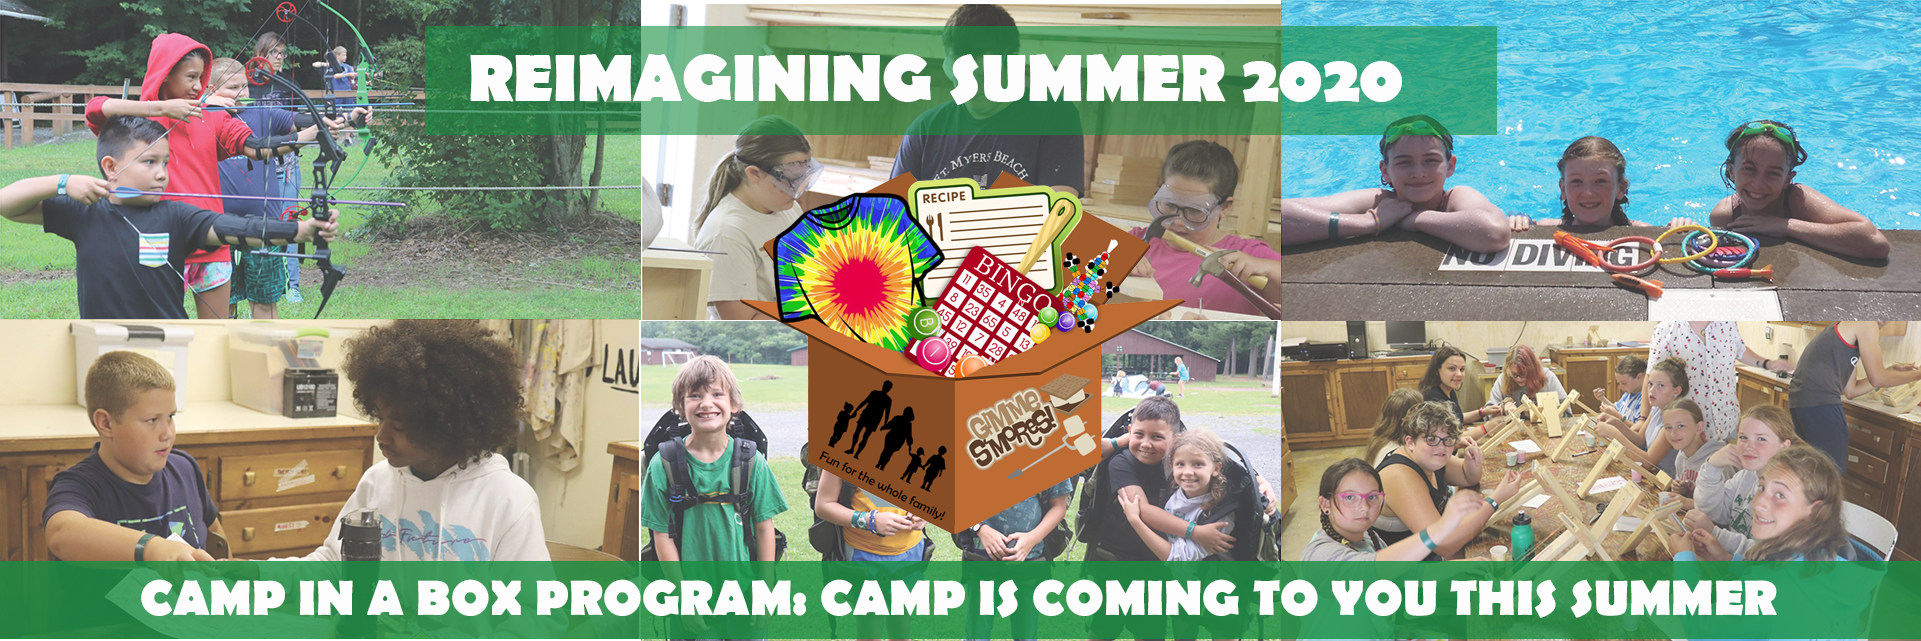 reimagining summer 2020 through Camp in a Box. Camp is coming to you this summer. Box graphic over faded photos of youth at camp.